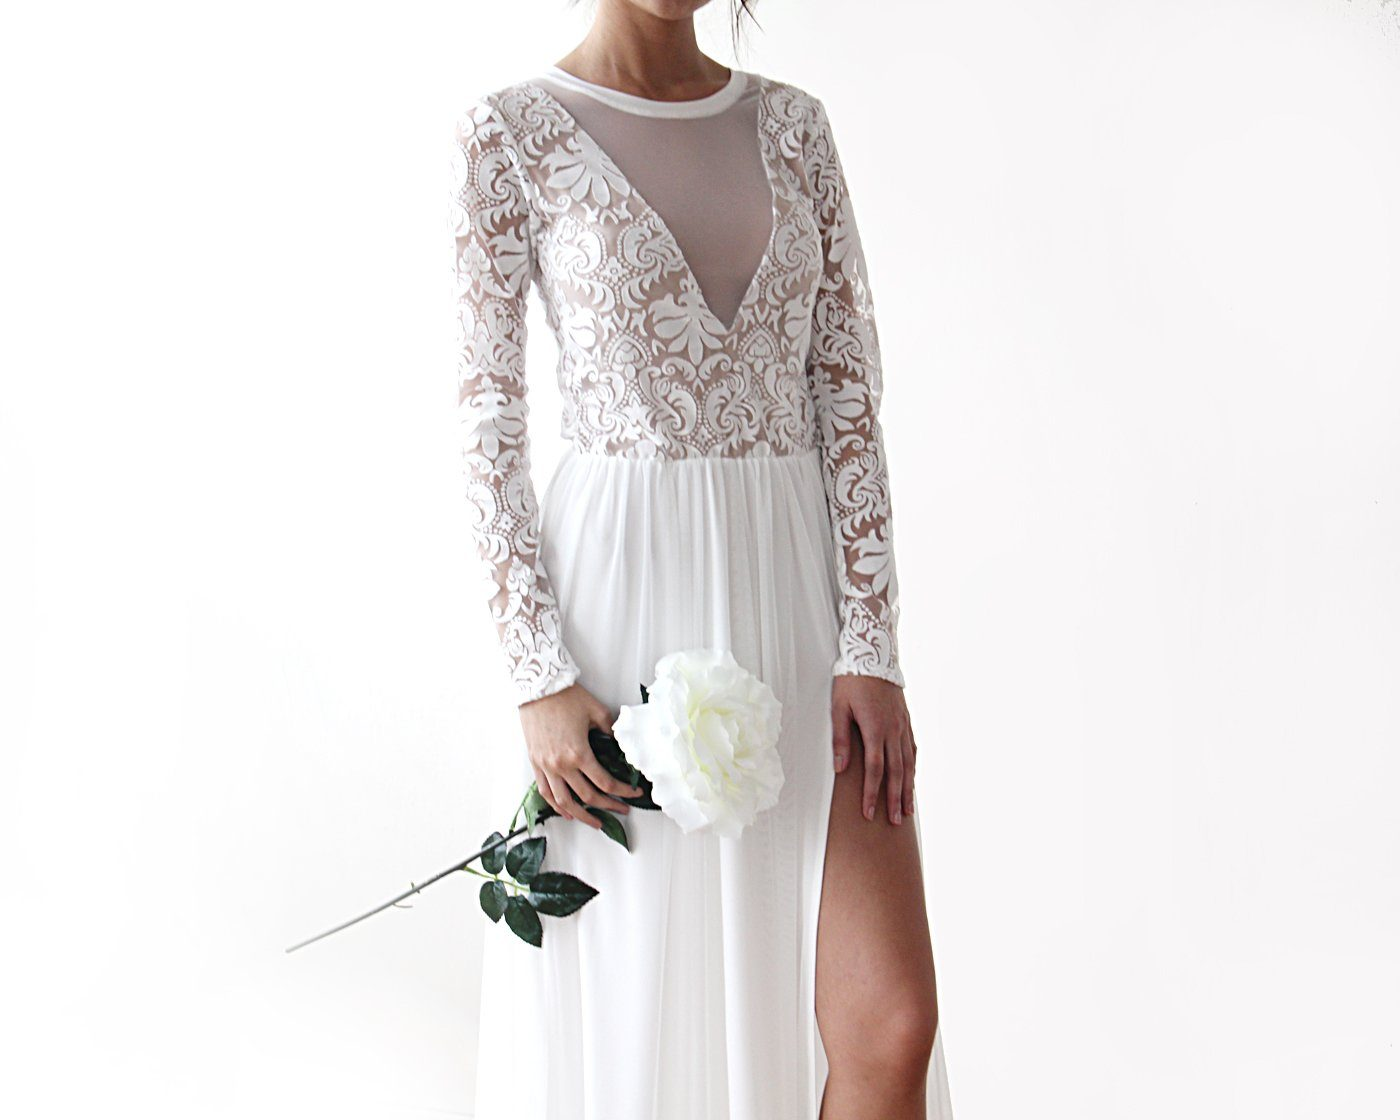 Semi Sheer Wedding dress with Long sleeves chiffon dress, Wedding dress with train, 3D lace bridal gown, Ivory wedding dress 1186